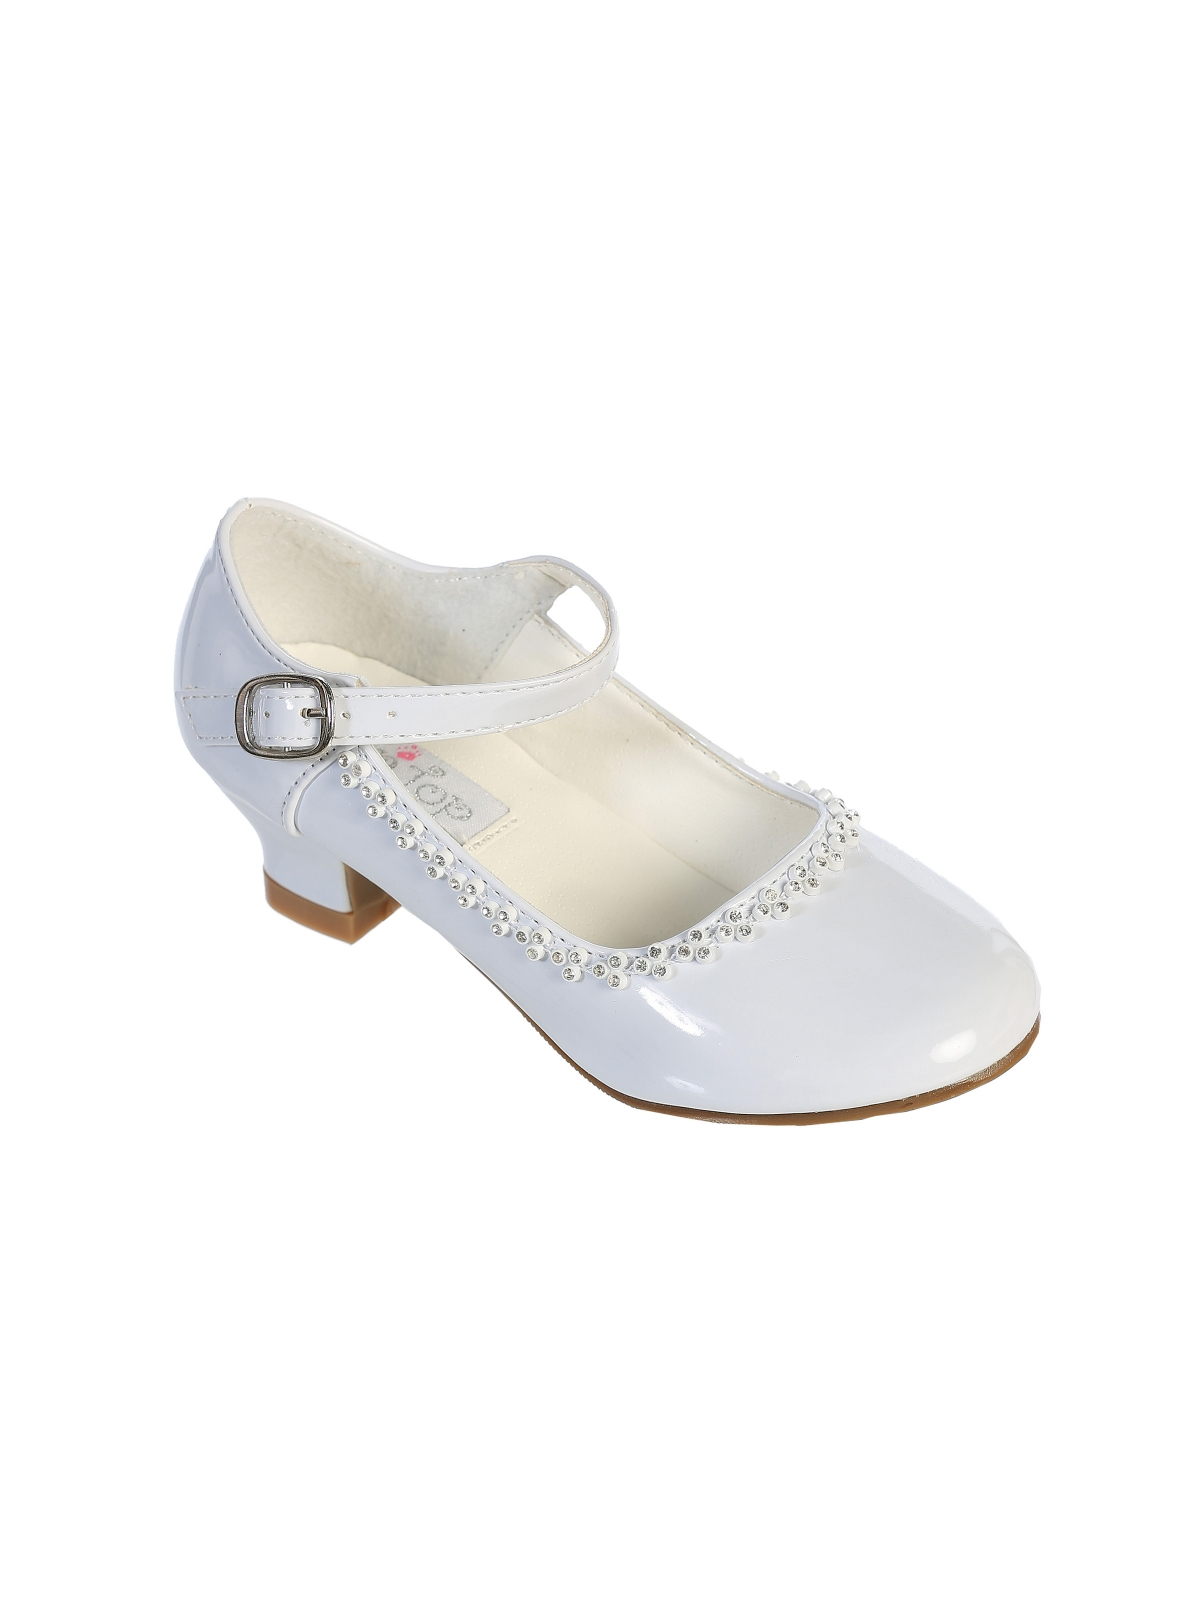 Shoes flower girl dresses flower girl dress for less flower girl shoe style s67 soft patent shoe with heel and rhinestone detailing in choice izmirmasajfo